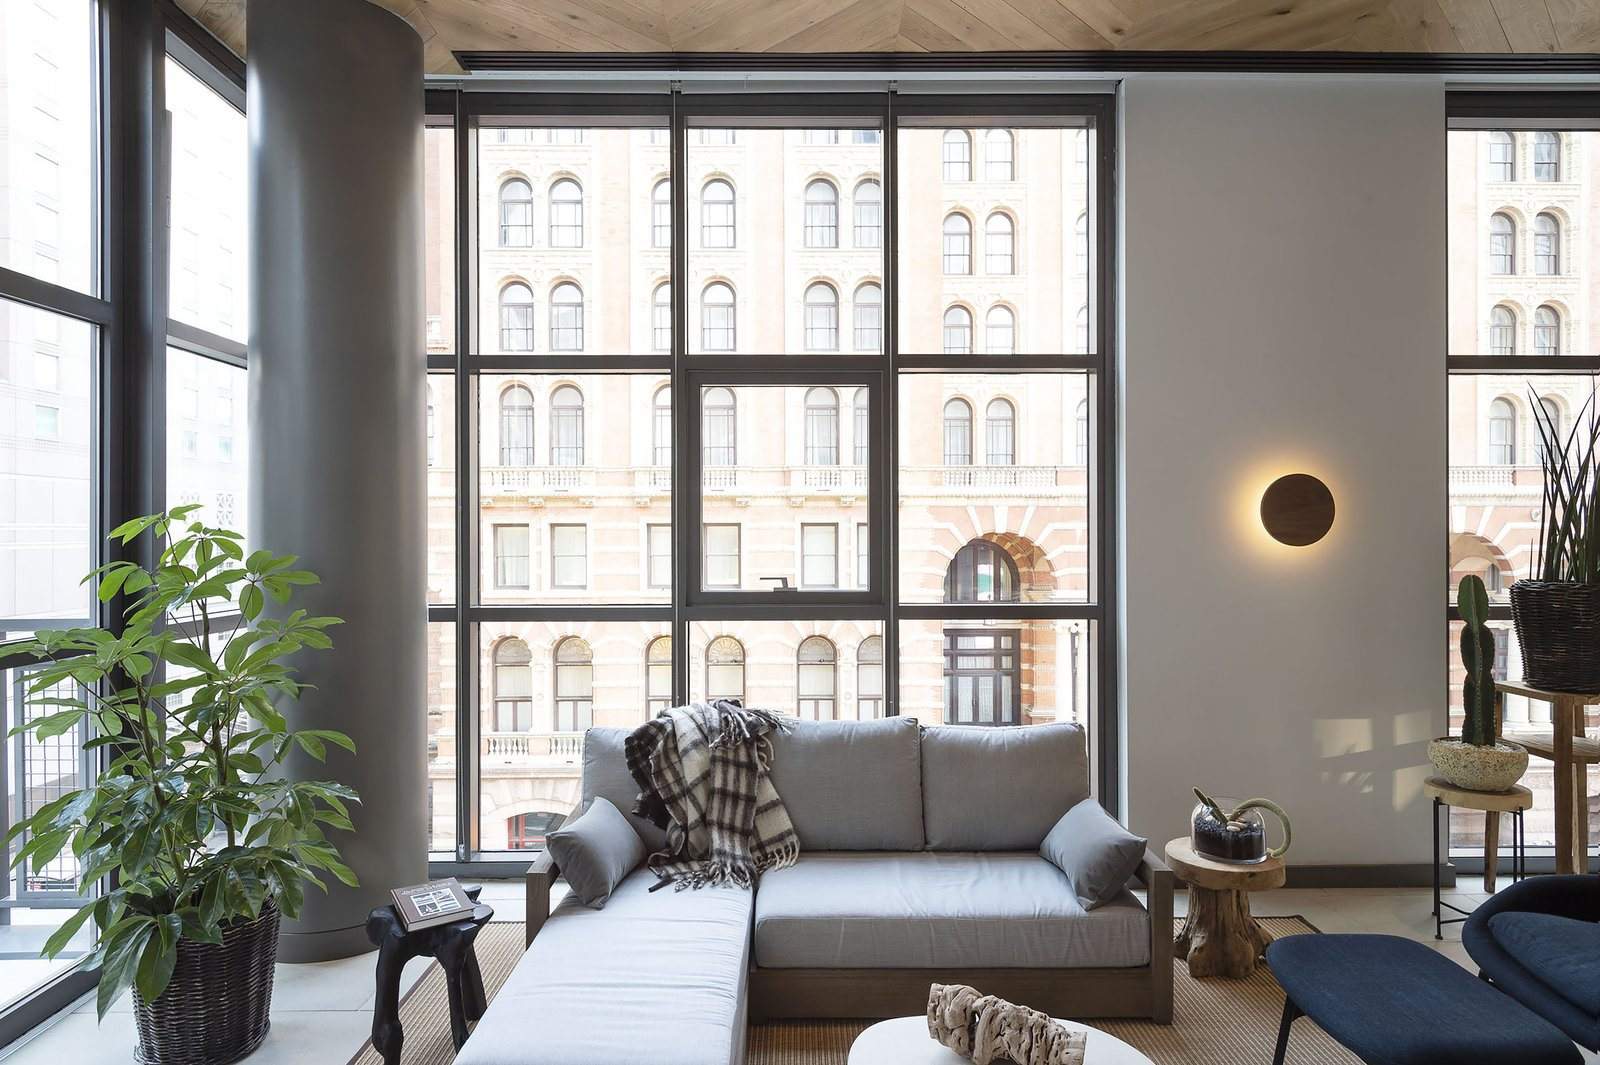 Living Room, Wall Lighting, Coffee Tables, Rug Floor, End Tables, Porcelain Tile Floor, and Sectional  ROOST Apartment Hotel